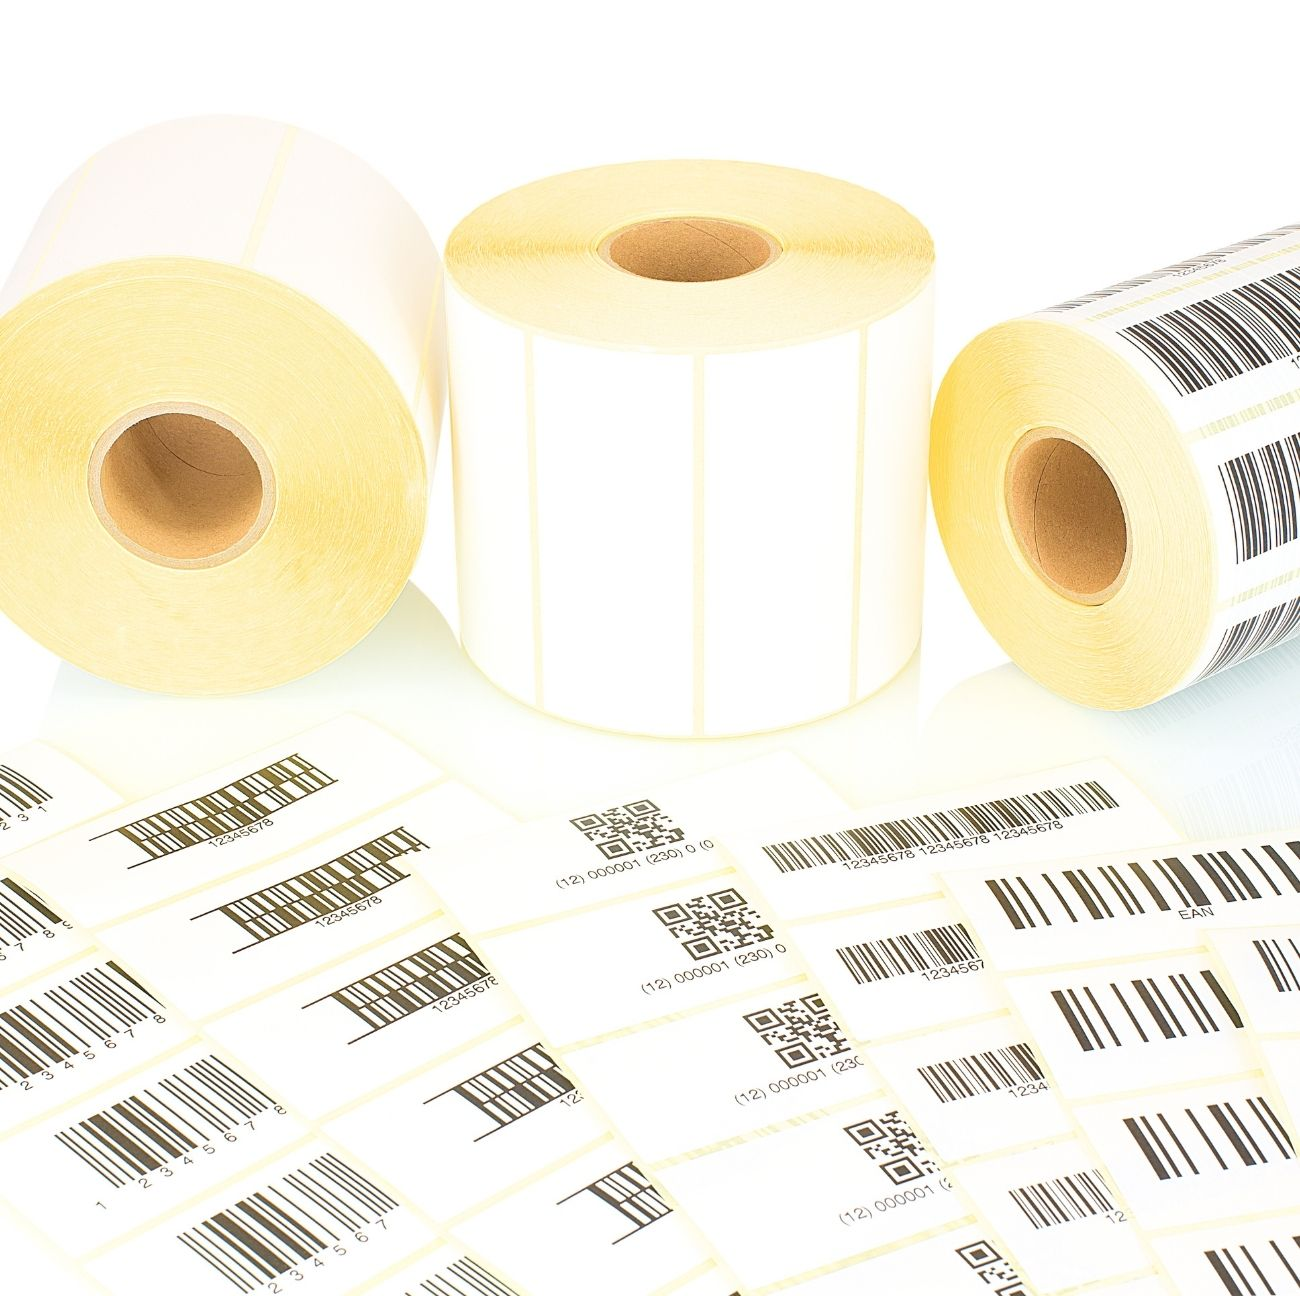 60 mm x 74 mm Labels